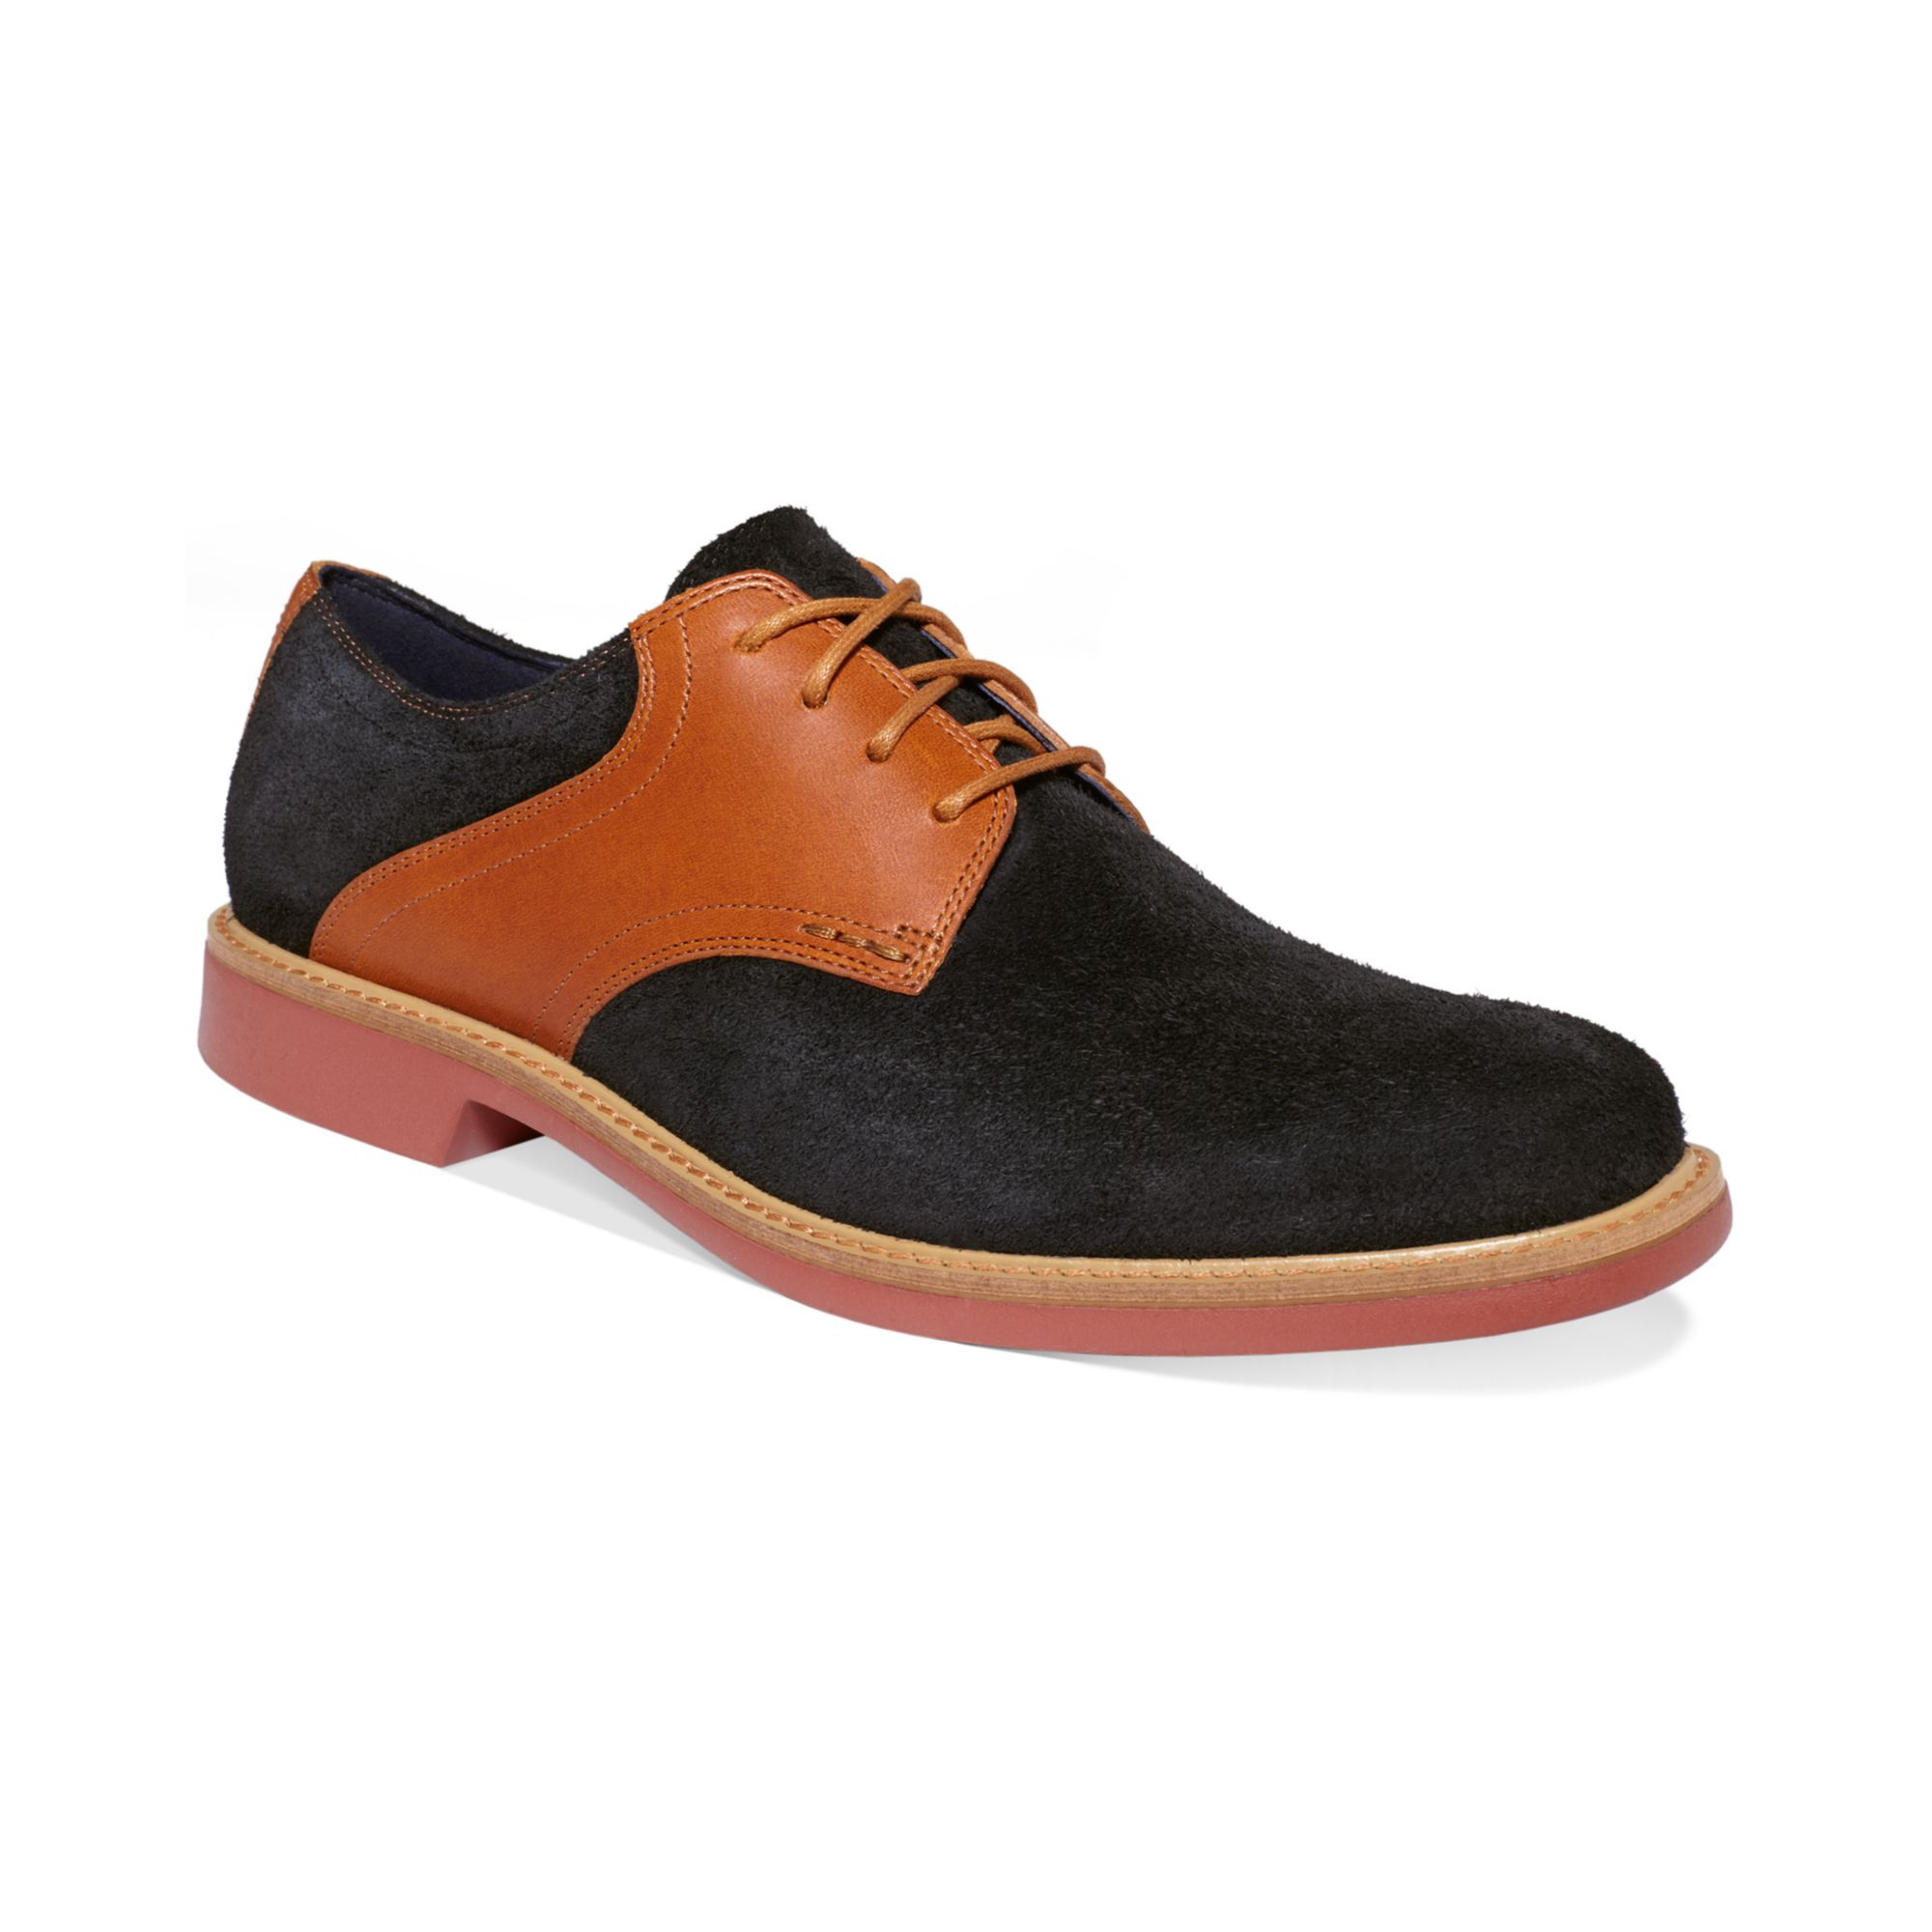 Brown Suede Saddle Shoes